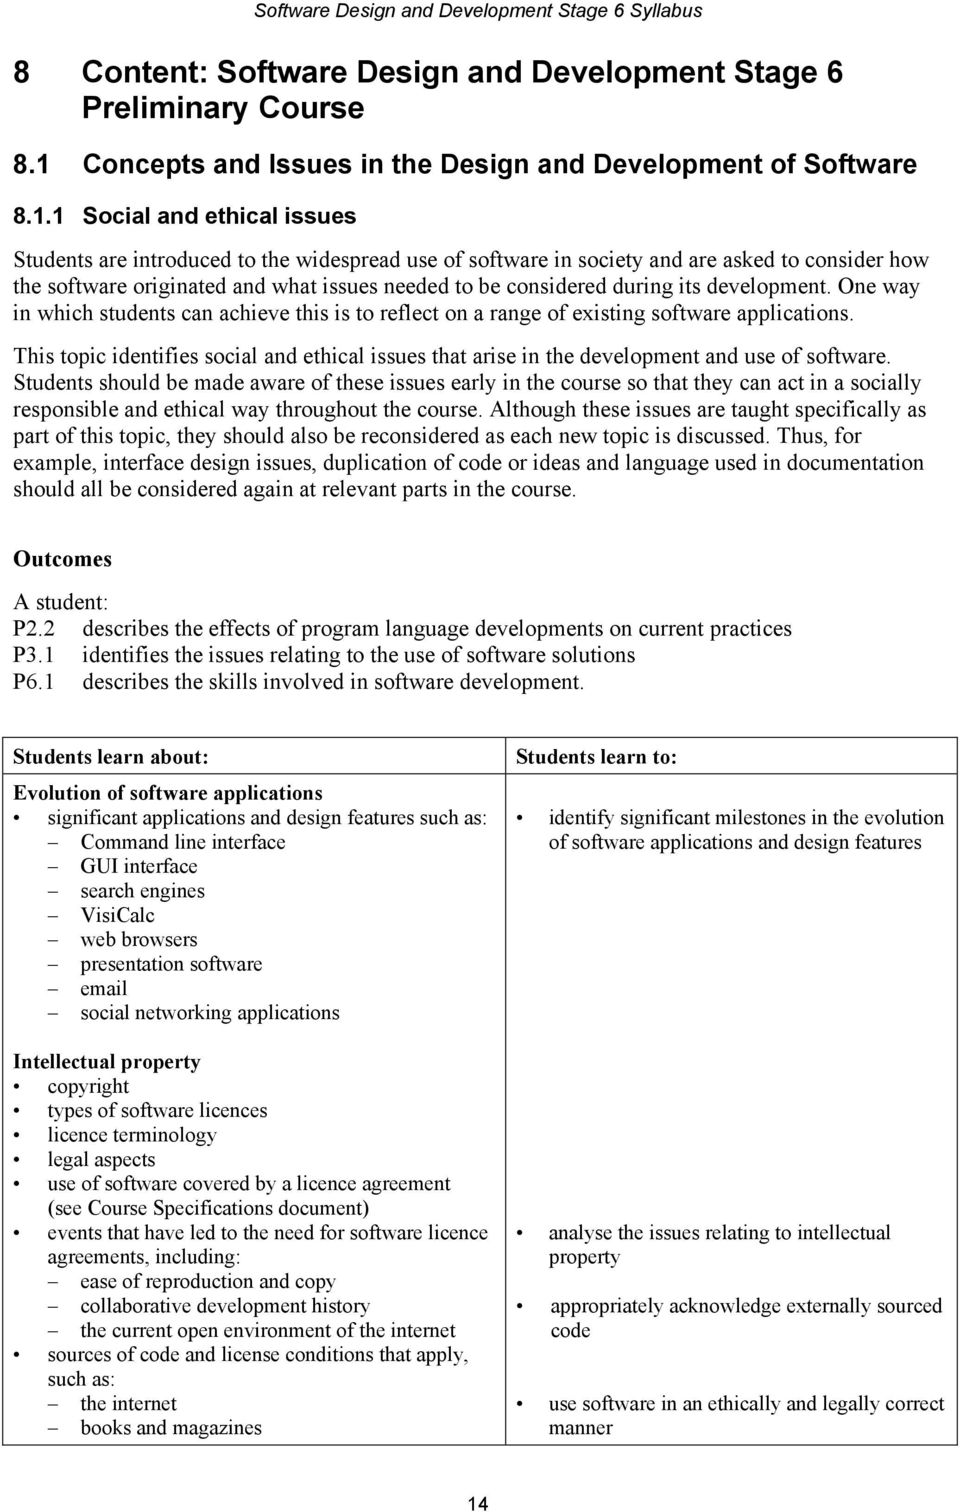 Software Design And Development Stage 6 Syllabus Pdf Free Download